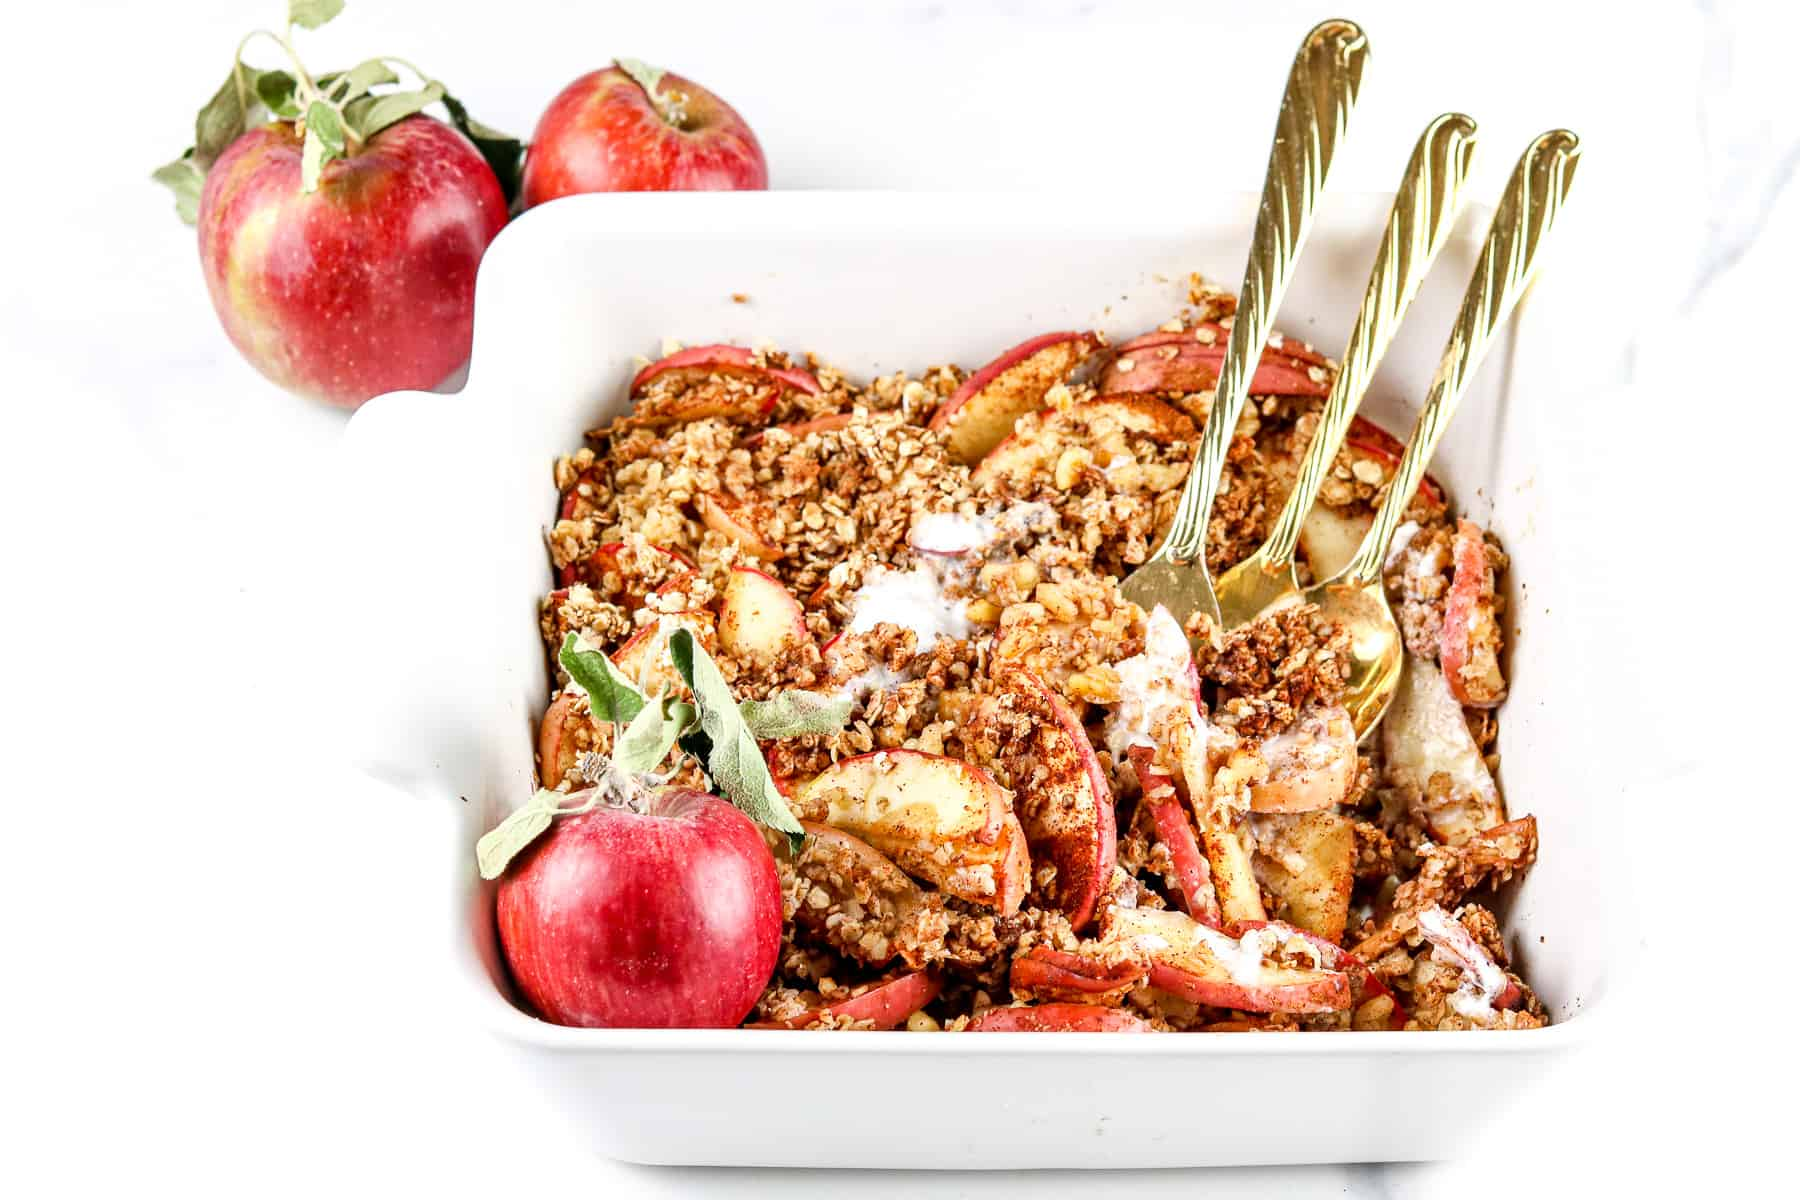 Image of apple crisp in a baking dish with forks.